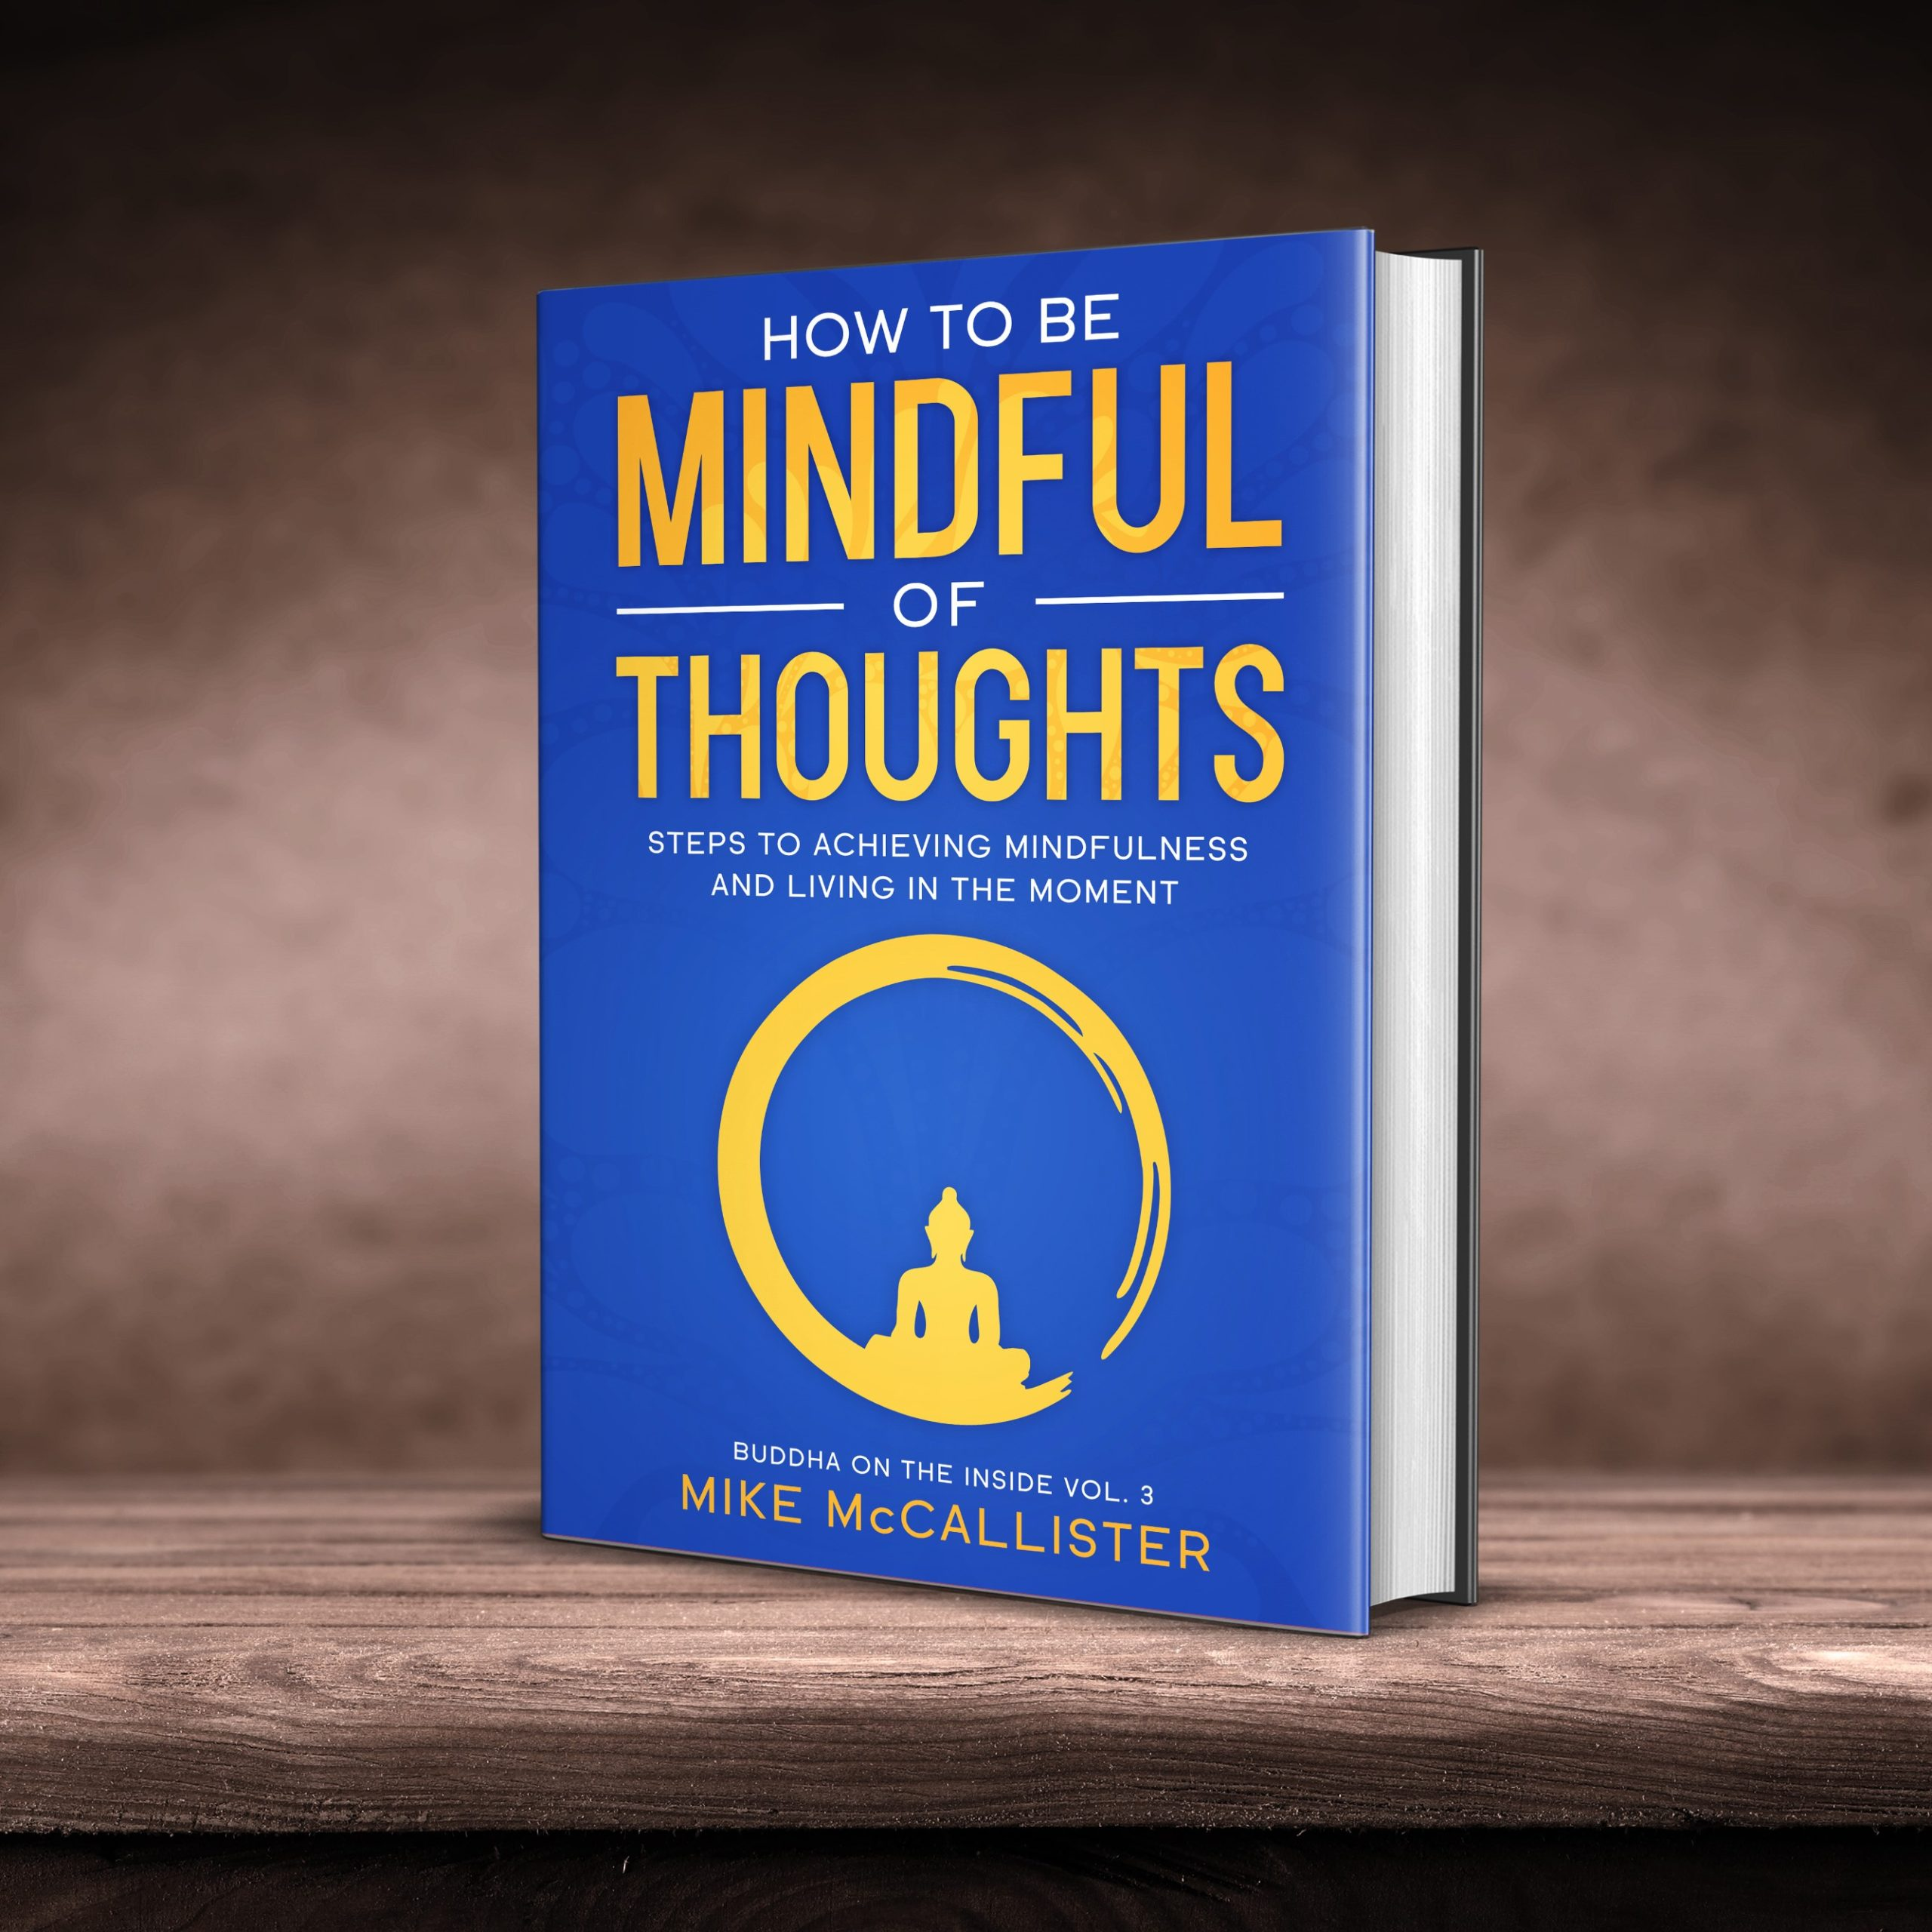 How To Be Mindful Of Thoughts: Steps To Achieving Mindfulness And Living In The Moment (Buddha on the Inside Book 3)